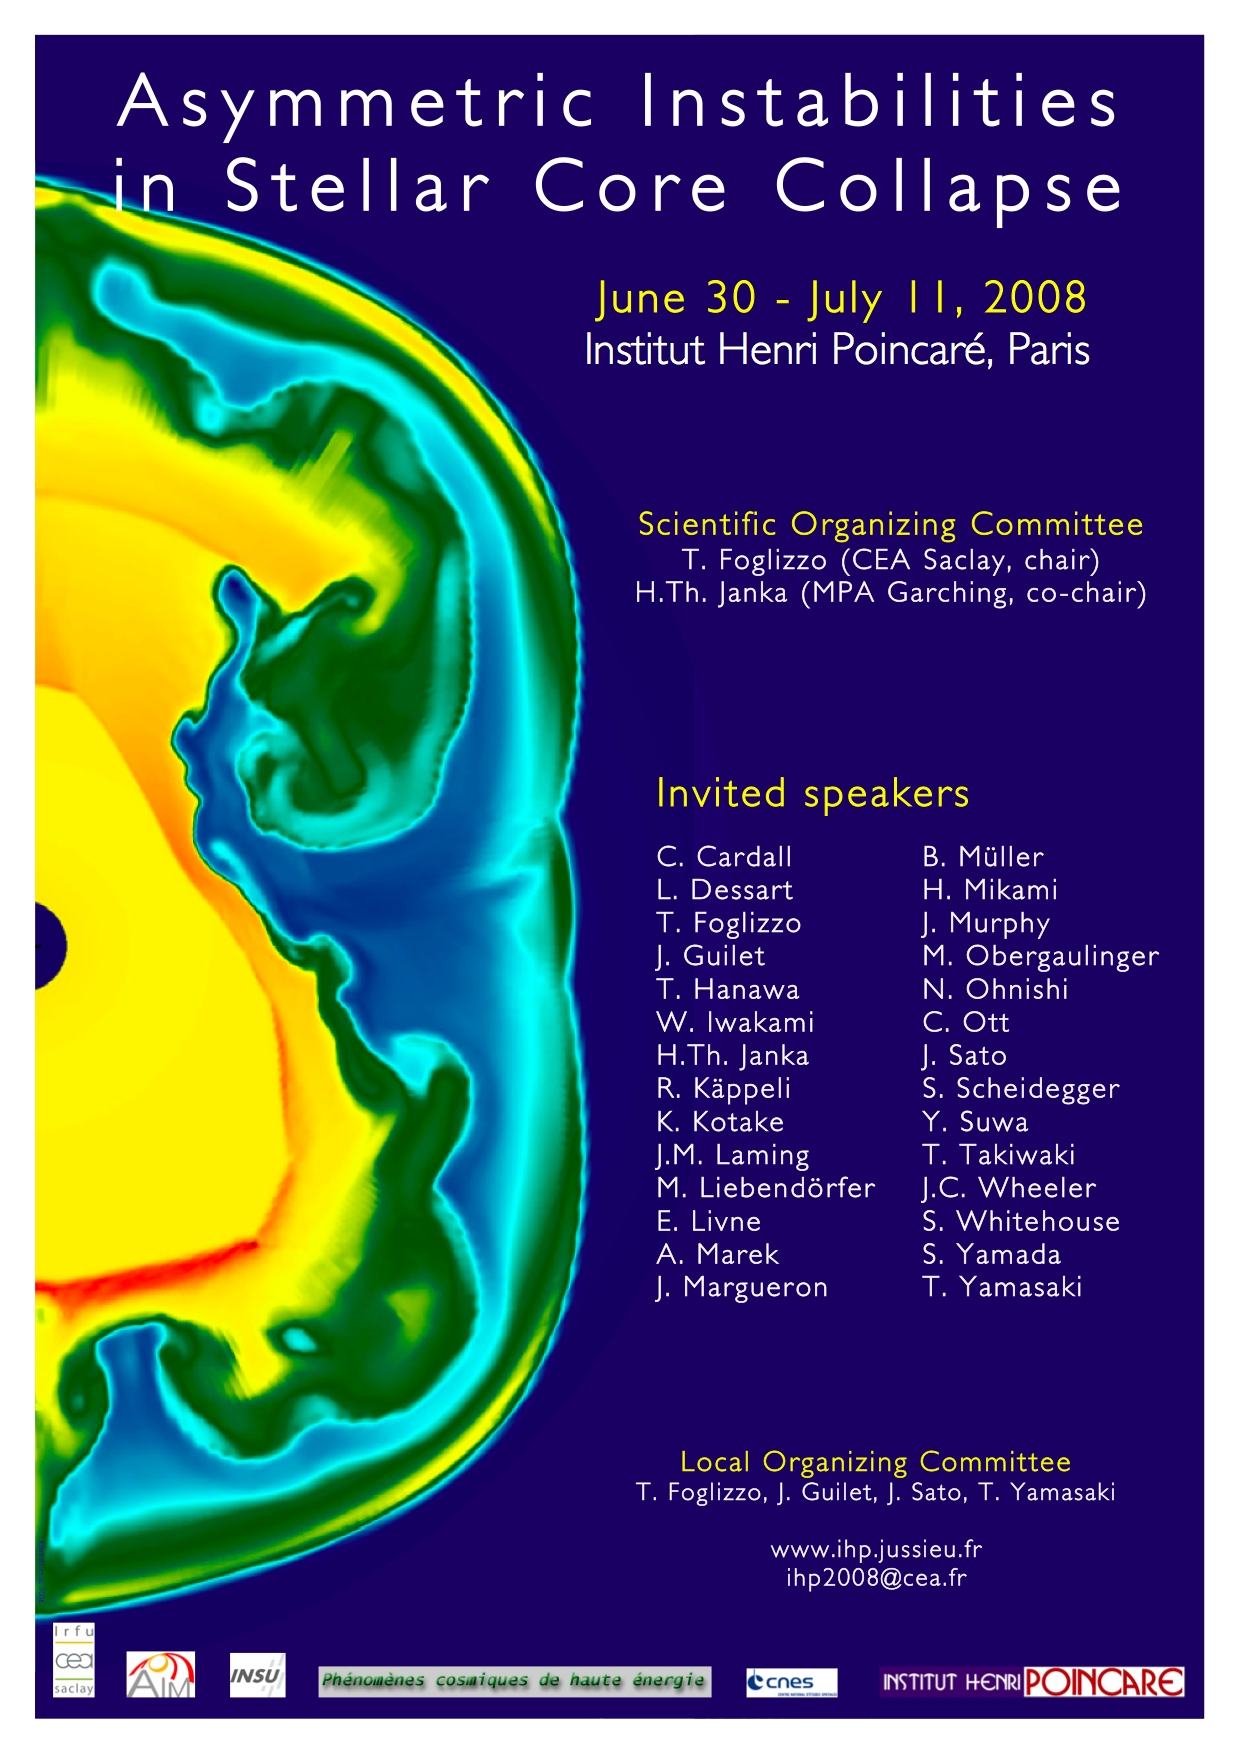 Workshop on the explosion of Core Collapse Supernovae